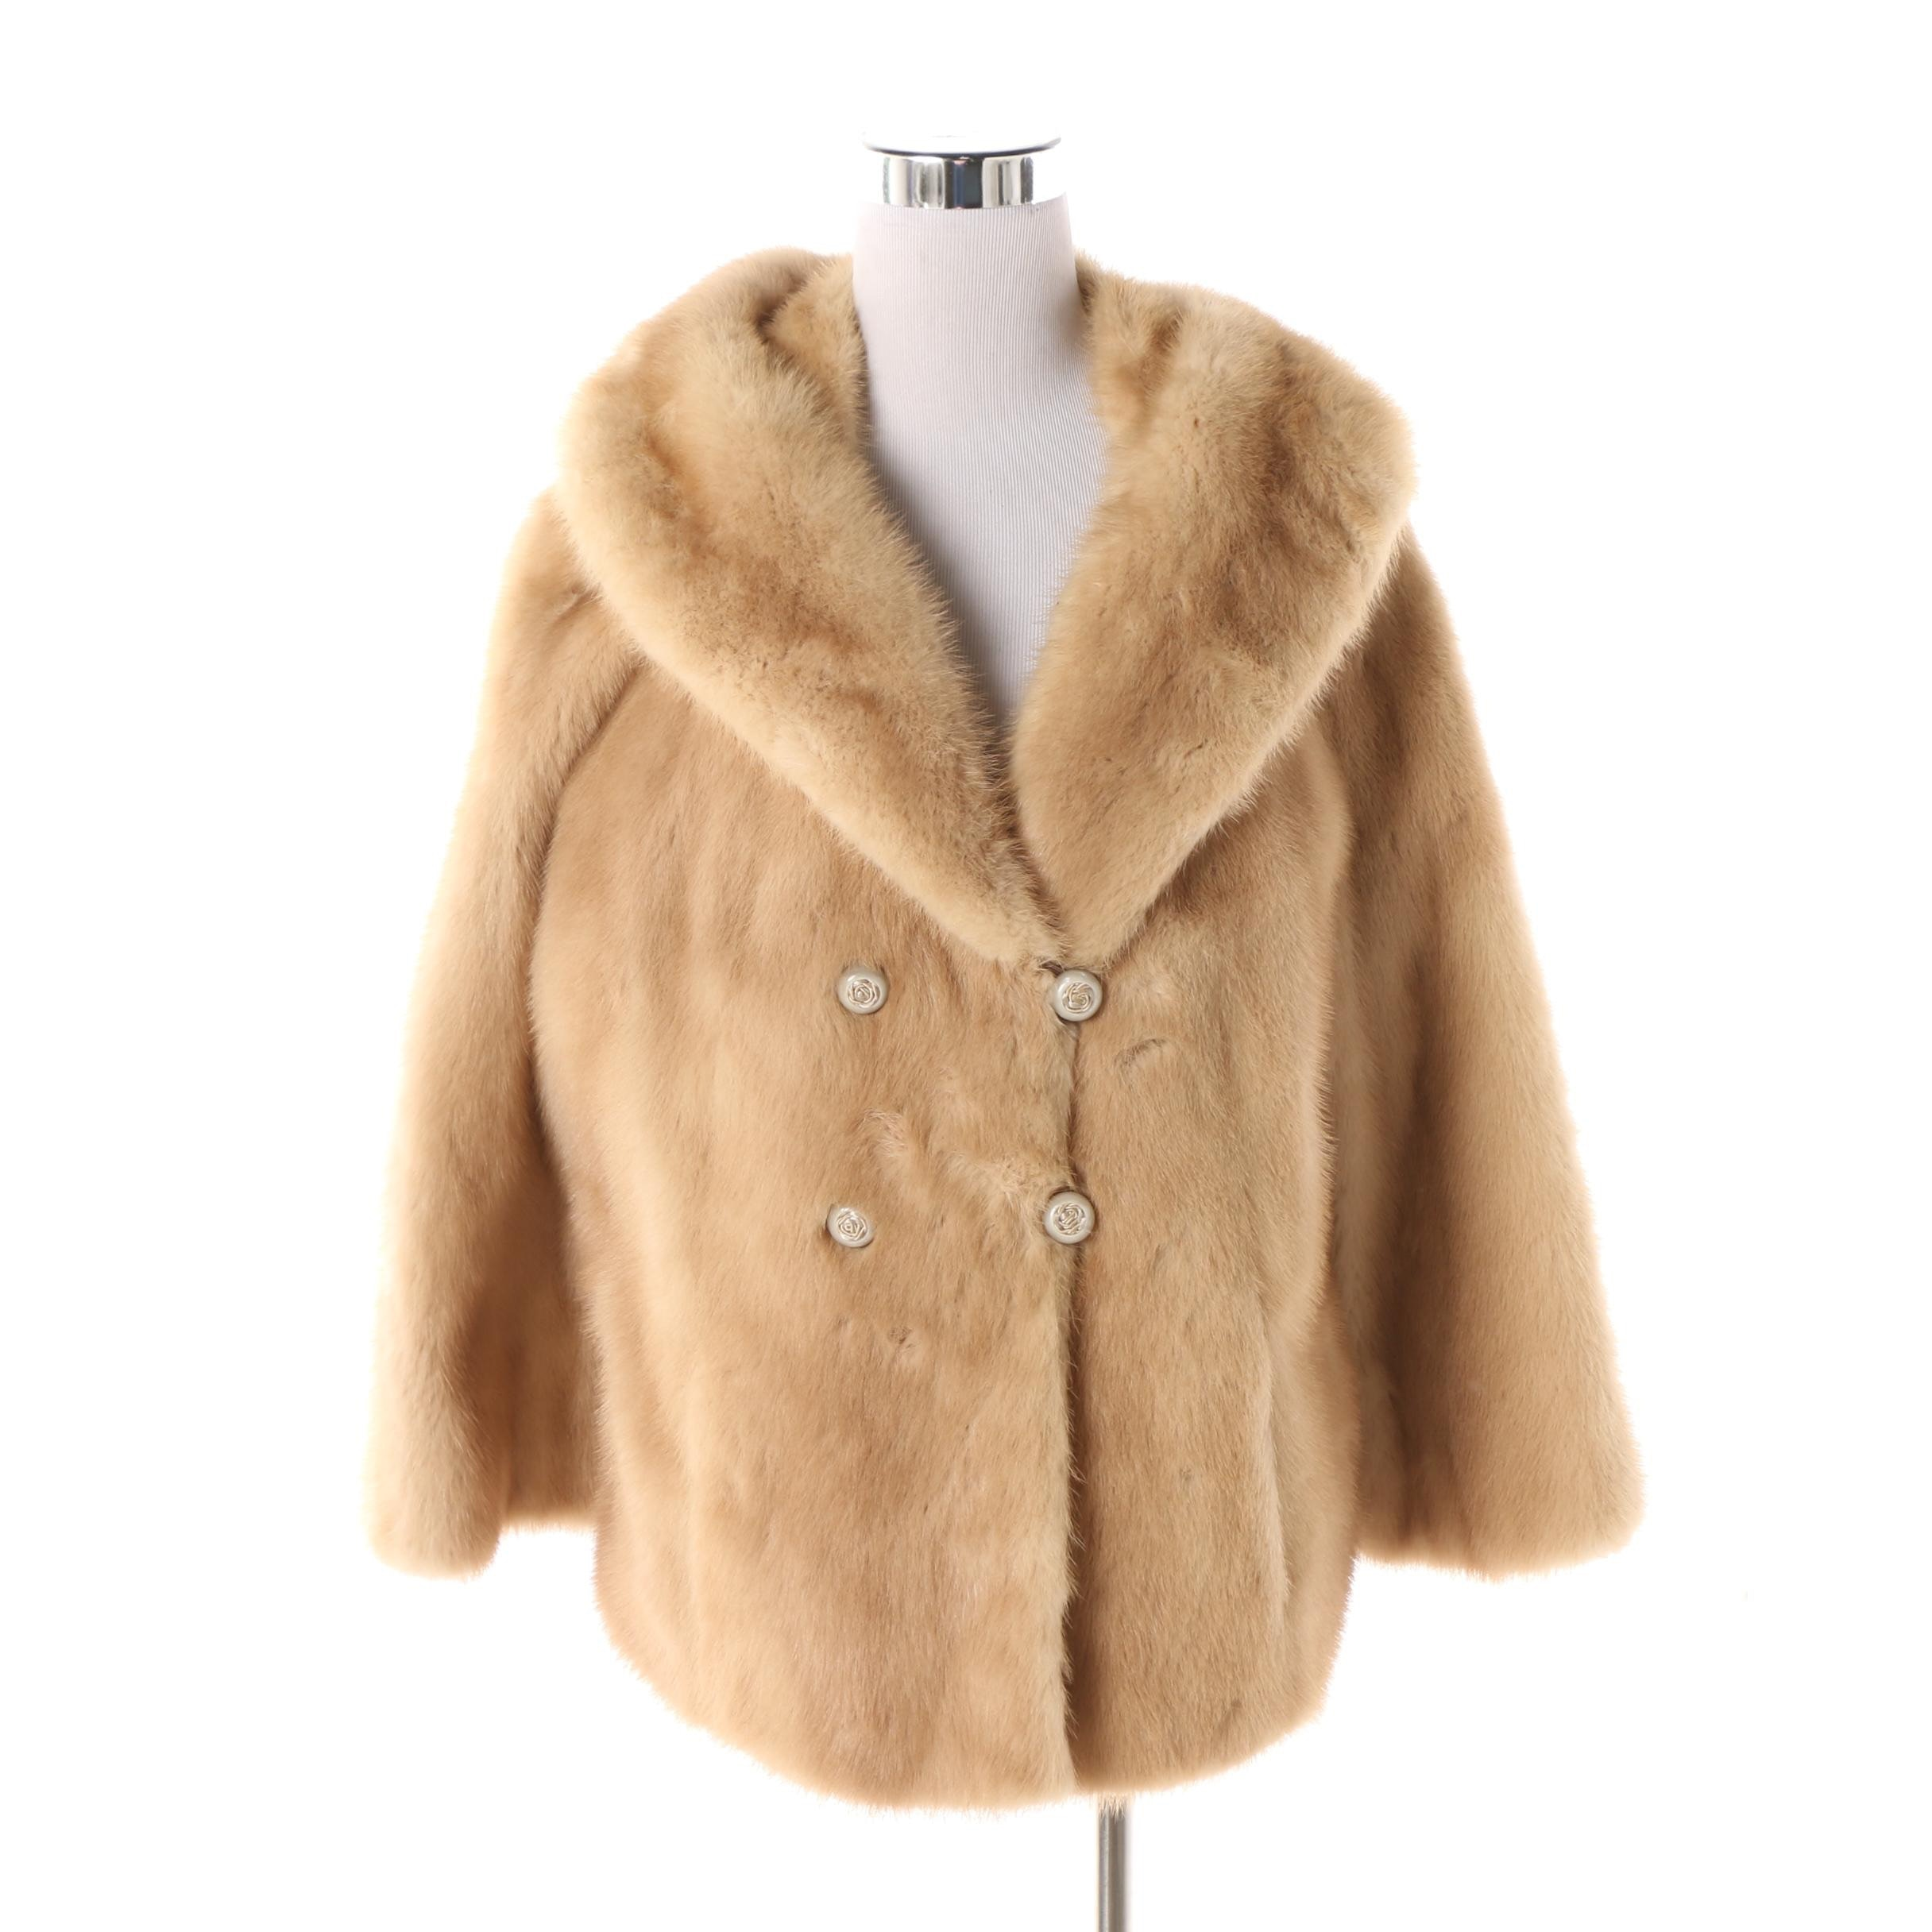 Vintage Hutzler's Baltimore Blonde Mink Fur Double-Breasted Jacket